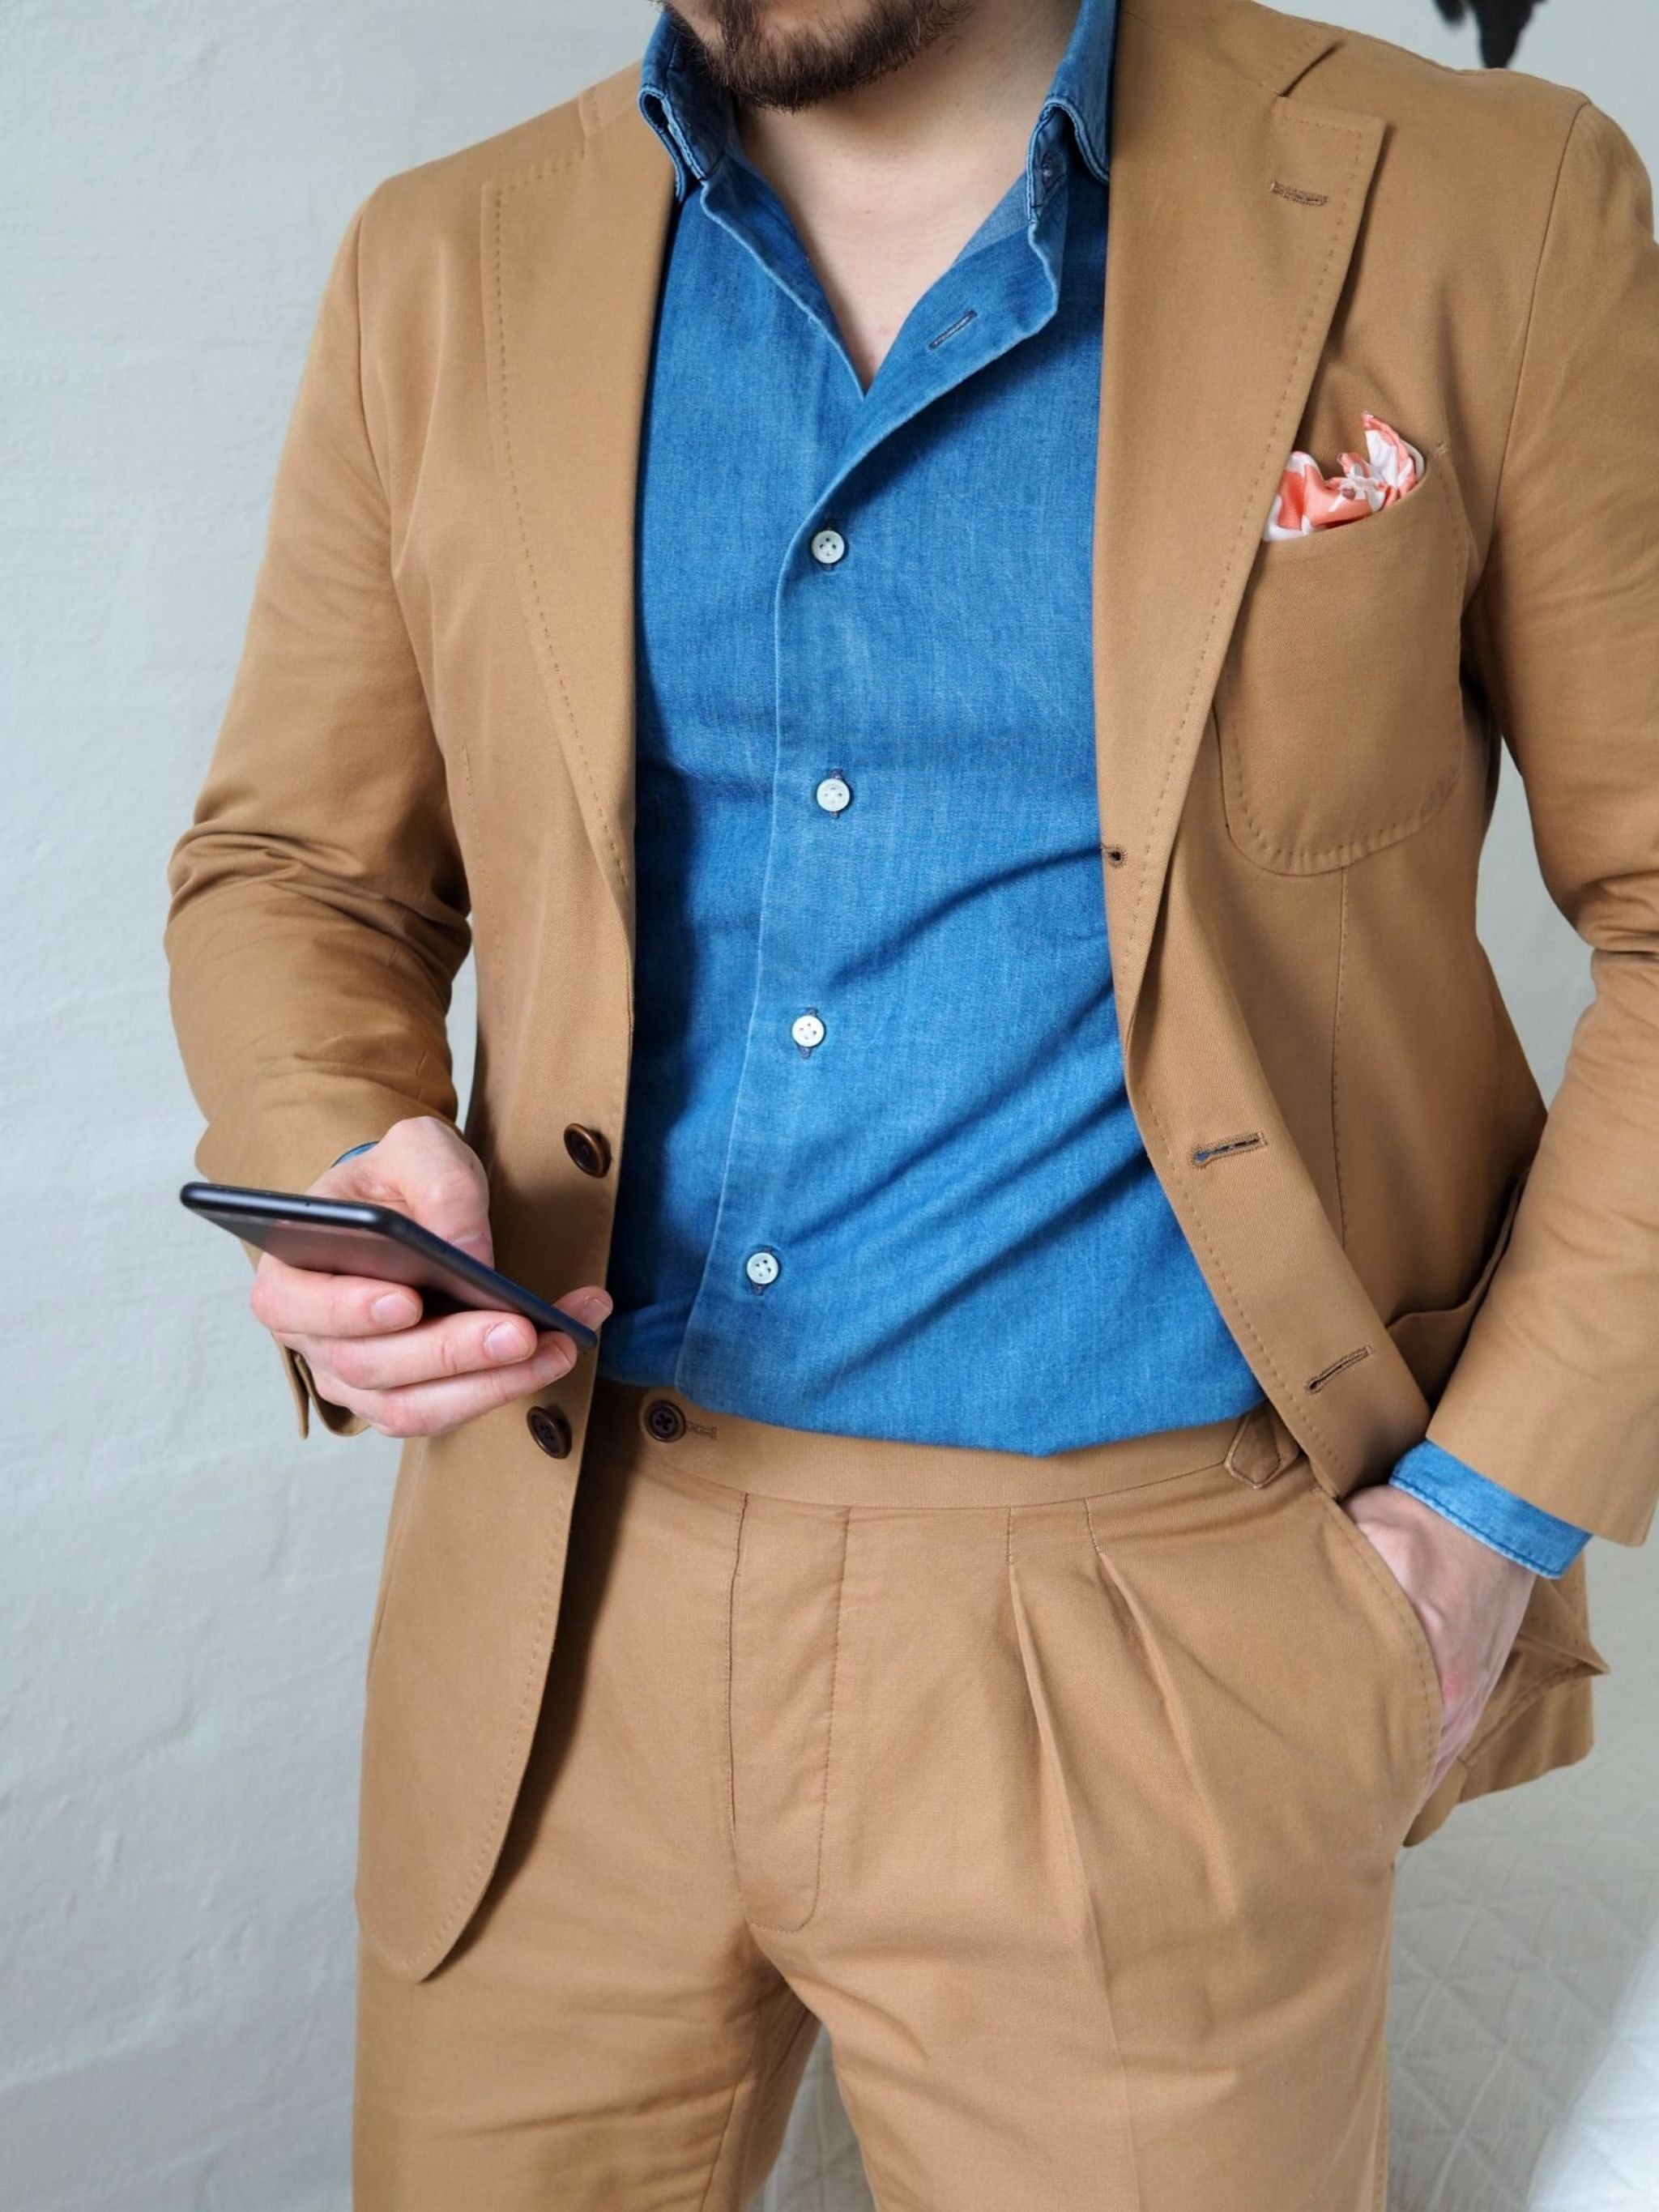 Favorite suits - Soft washed denim shirt with camel colored cotton suit details